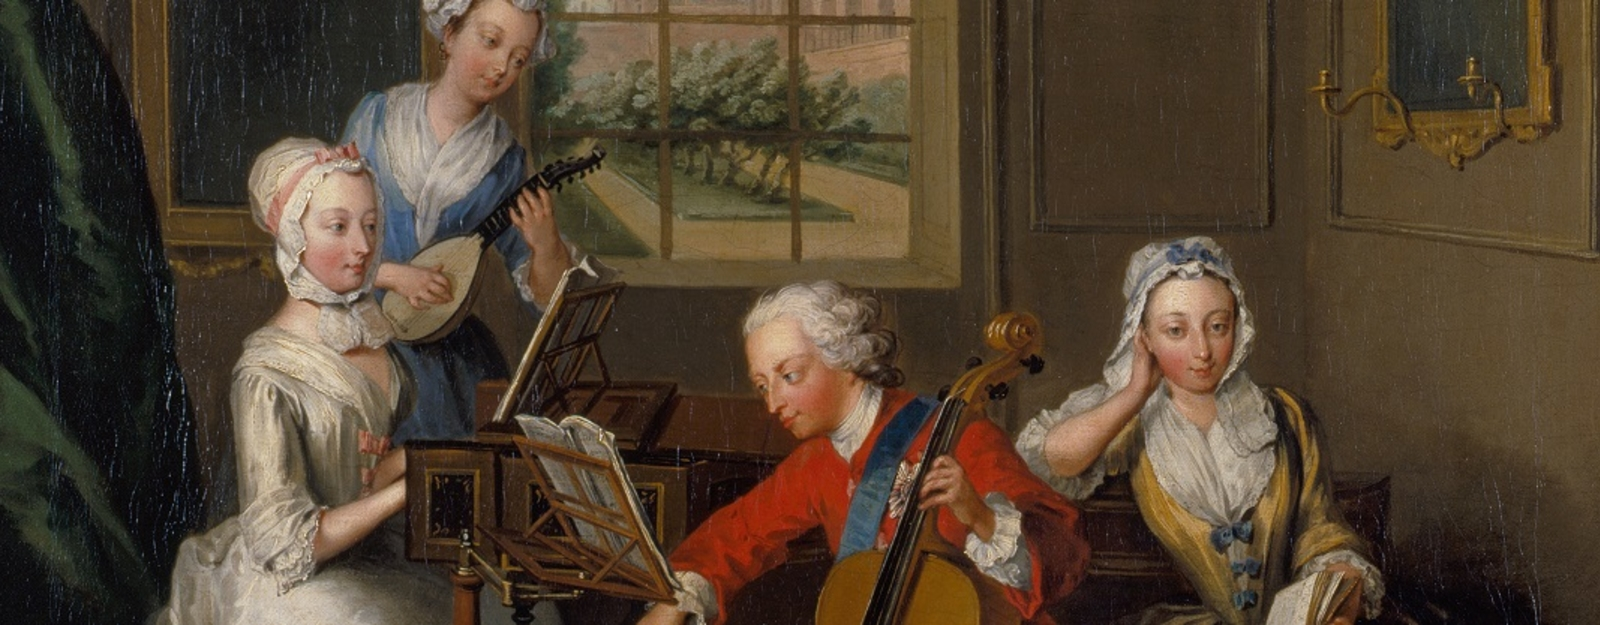 A group surrounds a harpsichord playing instruments